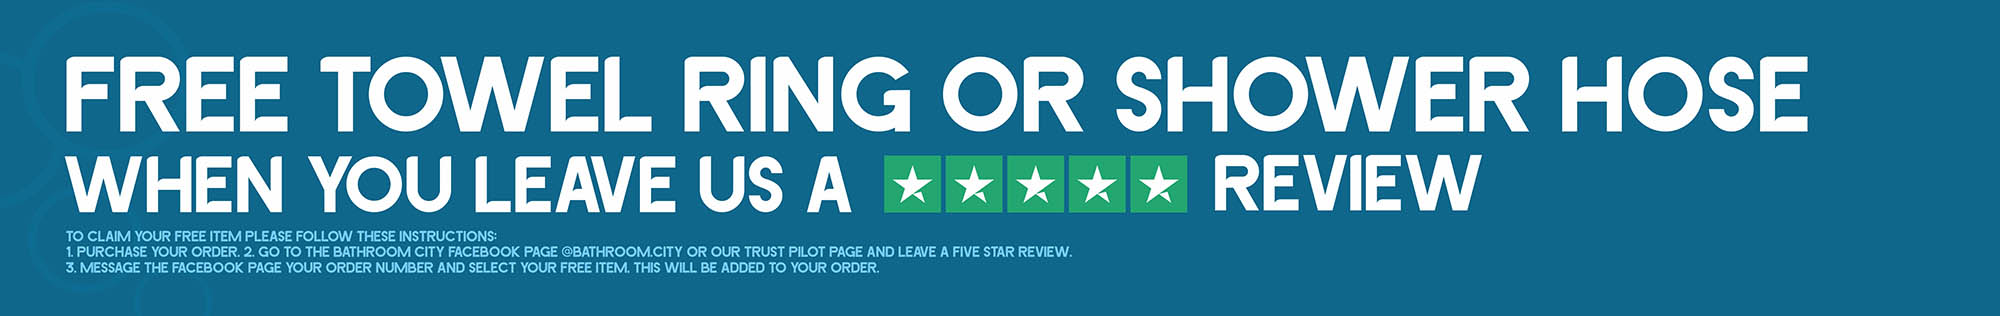 FREE towel ring or shower hose when you leave us a 5 star review